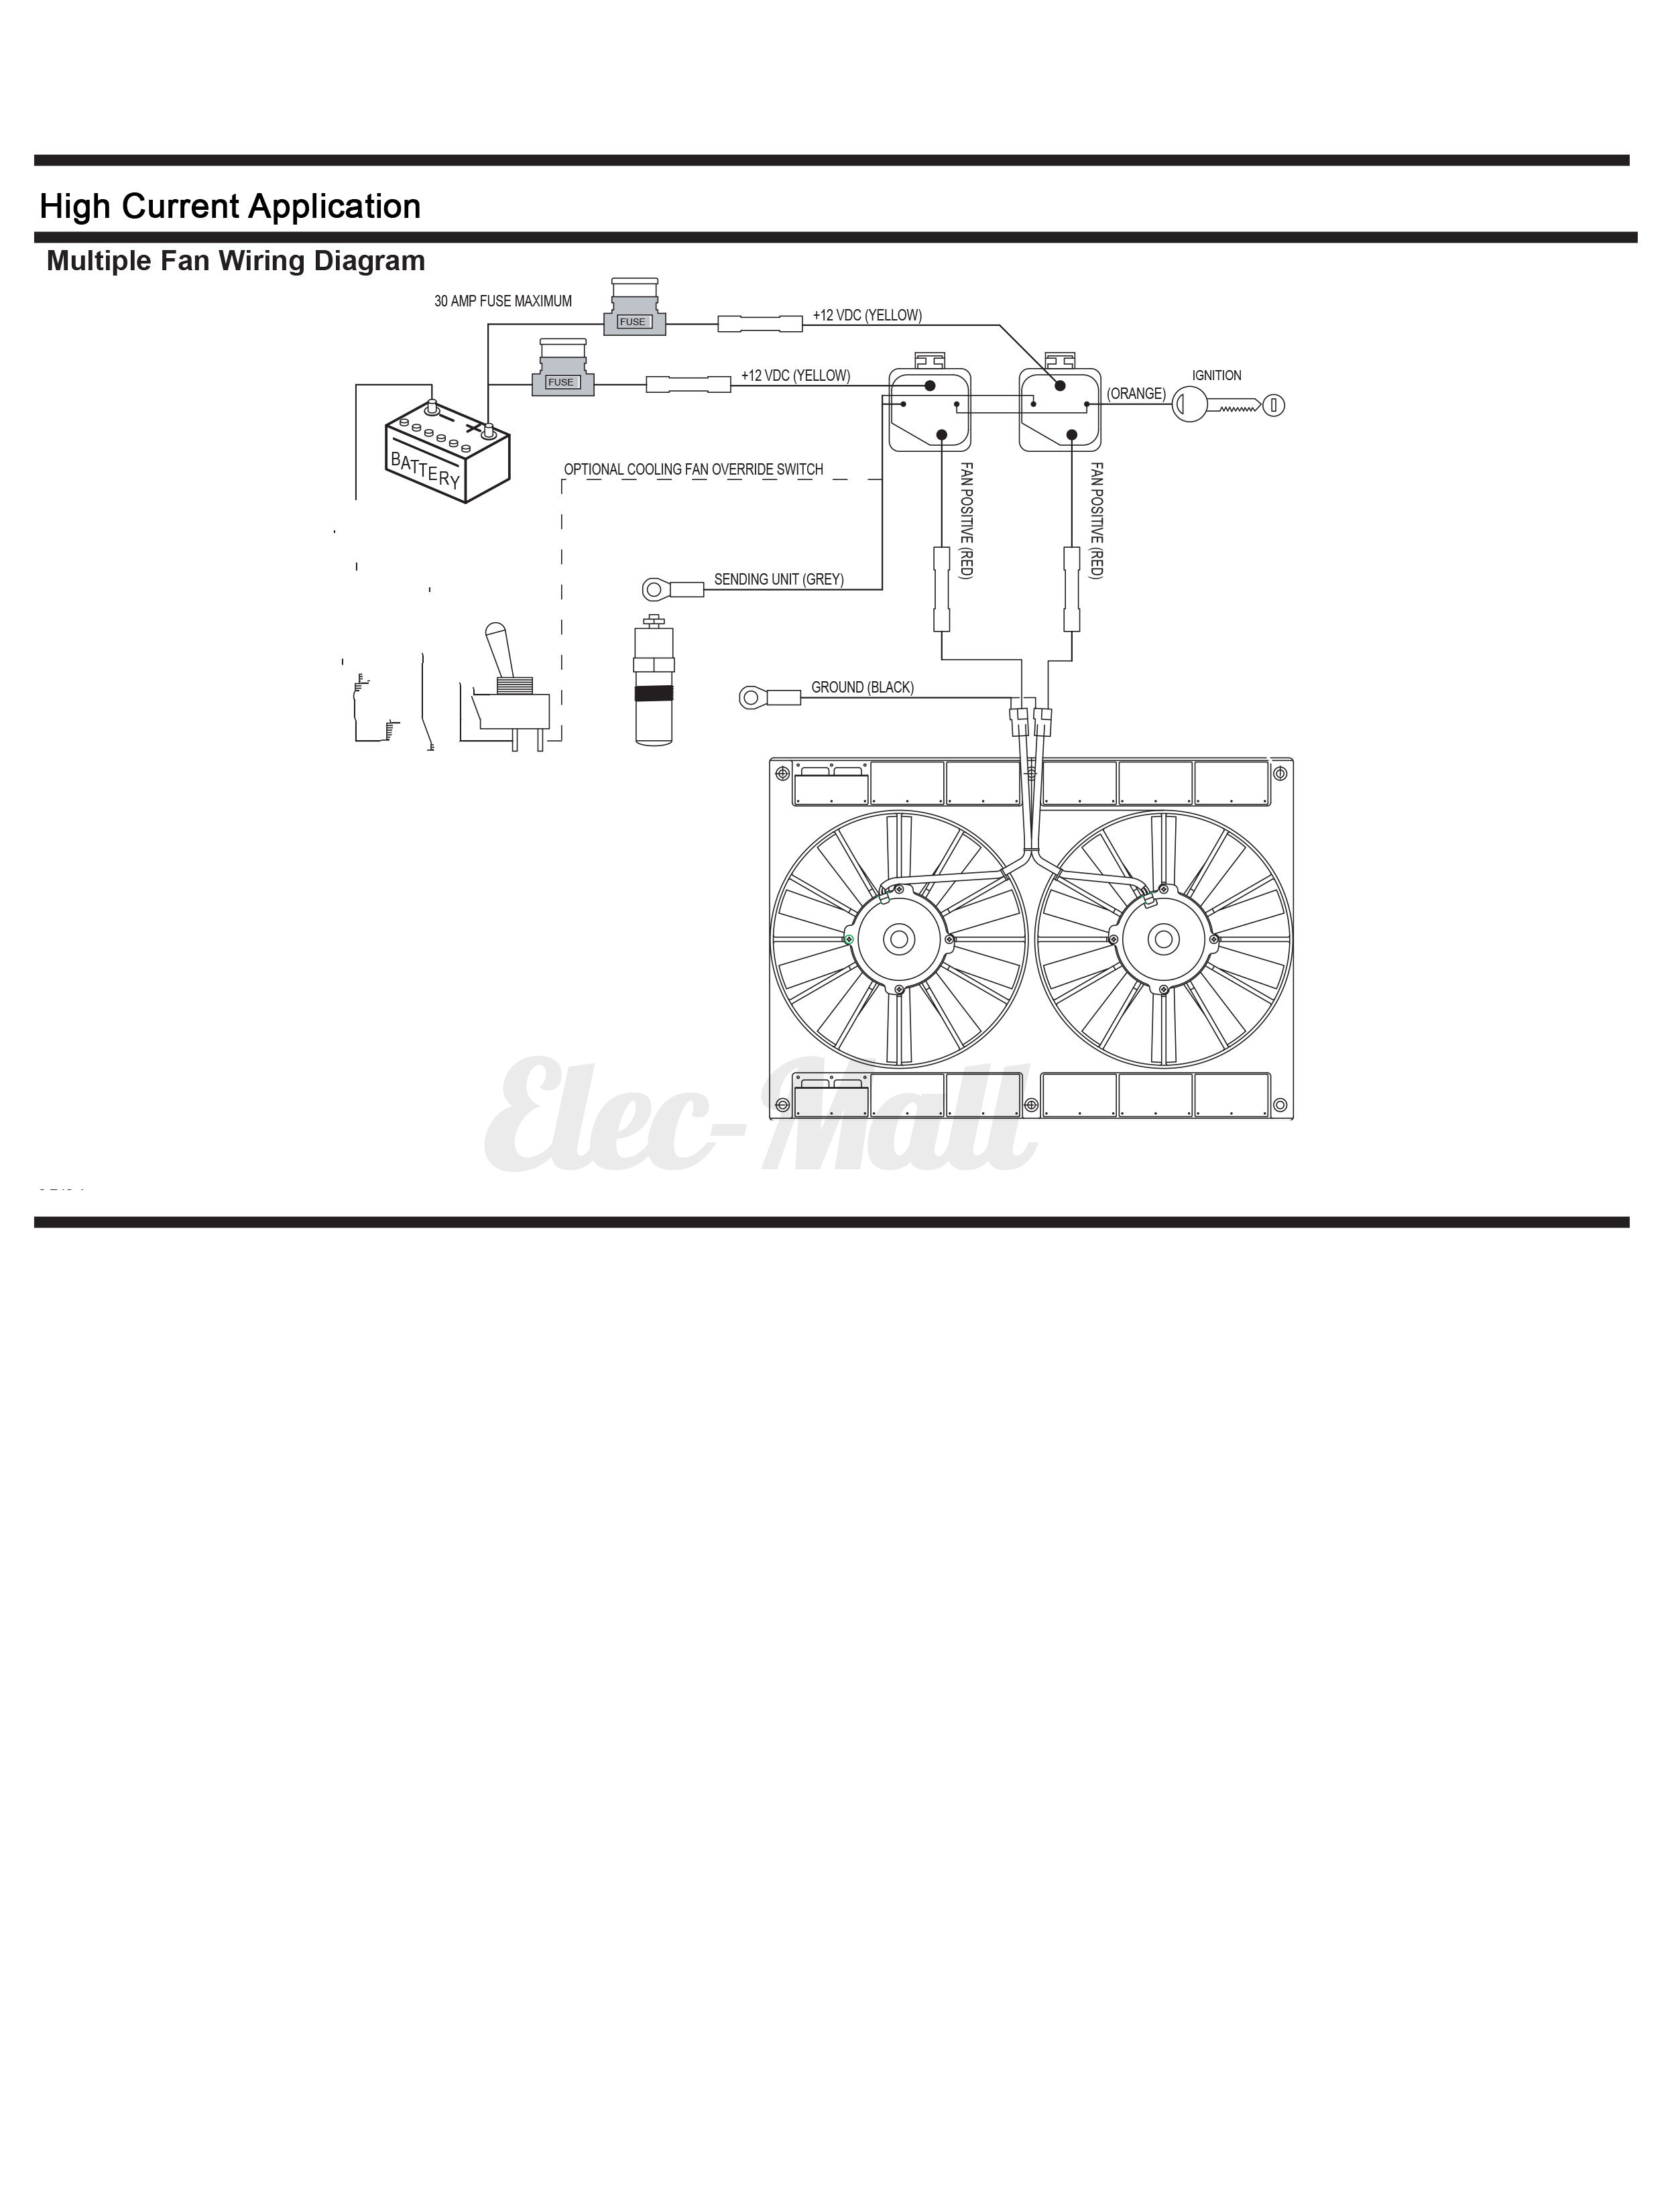 dual electric fan wiring diagram with relay how to draw a bar harness thermostat sensor